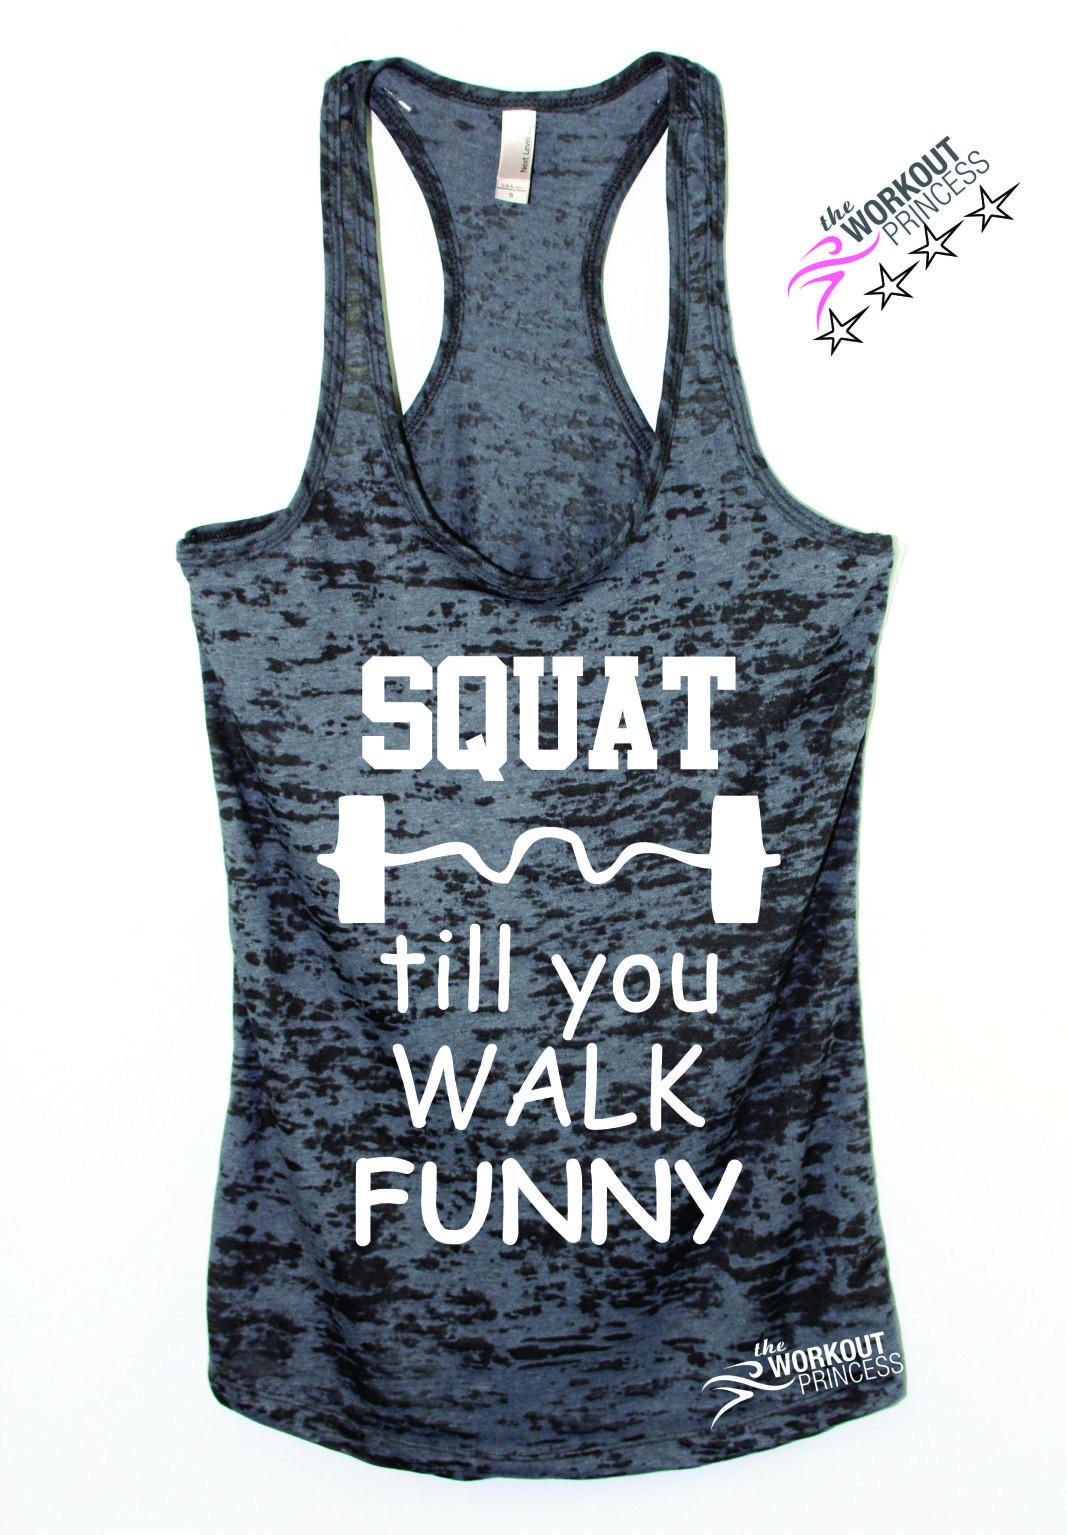 bbe3edb71b Squat Till You Walk Funny Women's funny Squat Tank Top from The Workout  Princess. Saved to Gym💪🏼💪🏼.